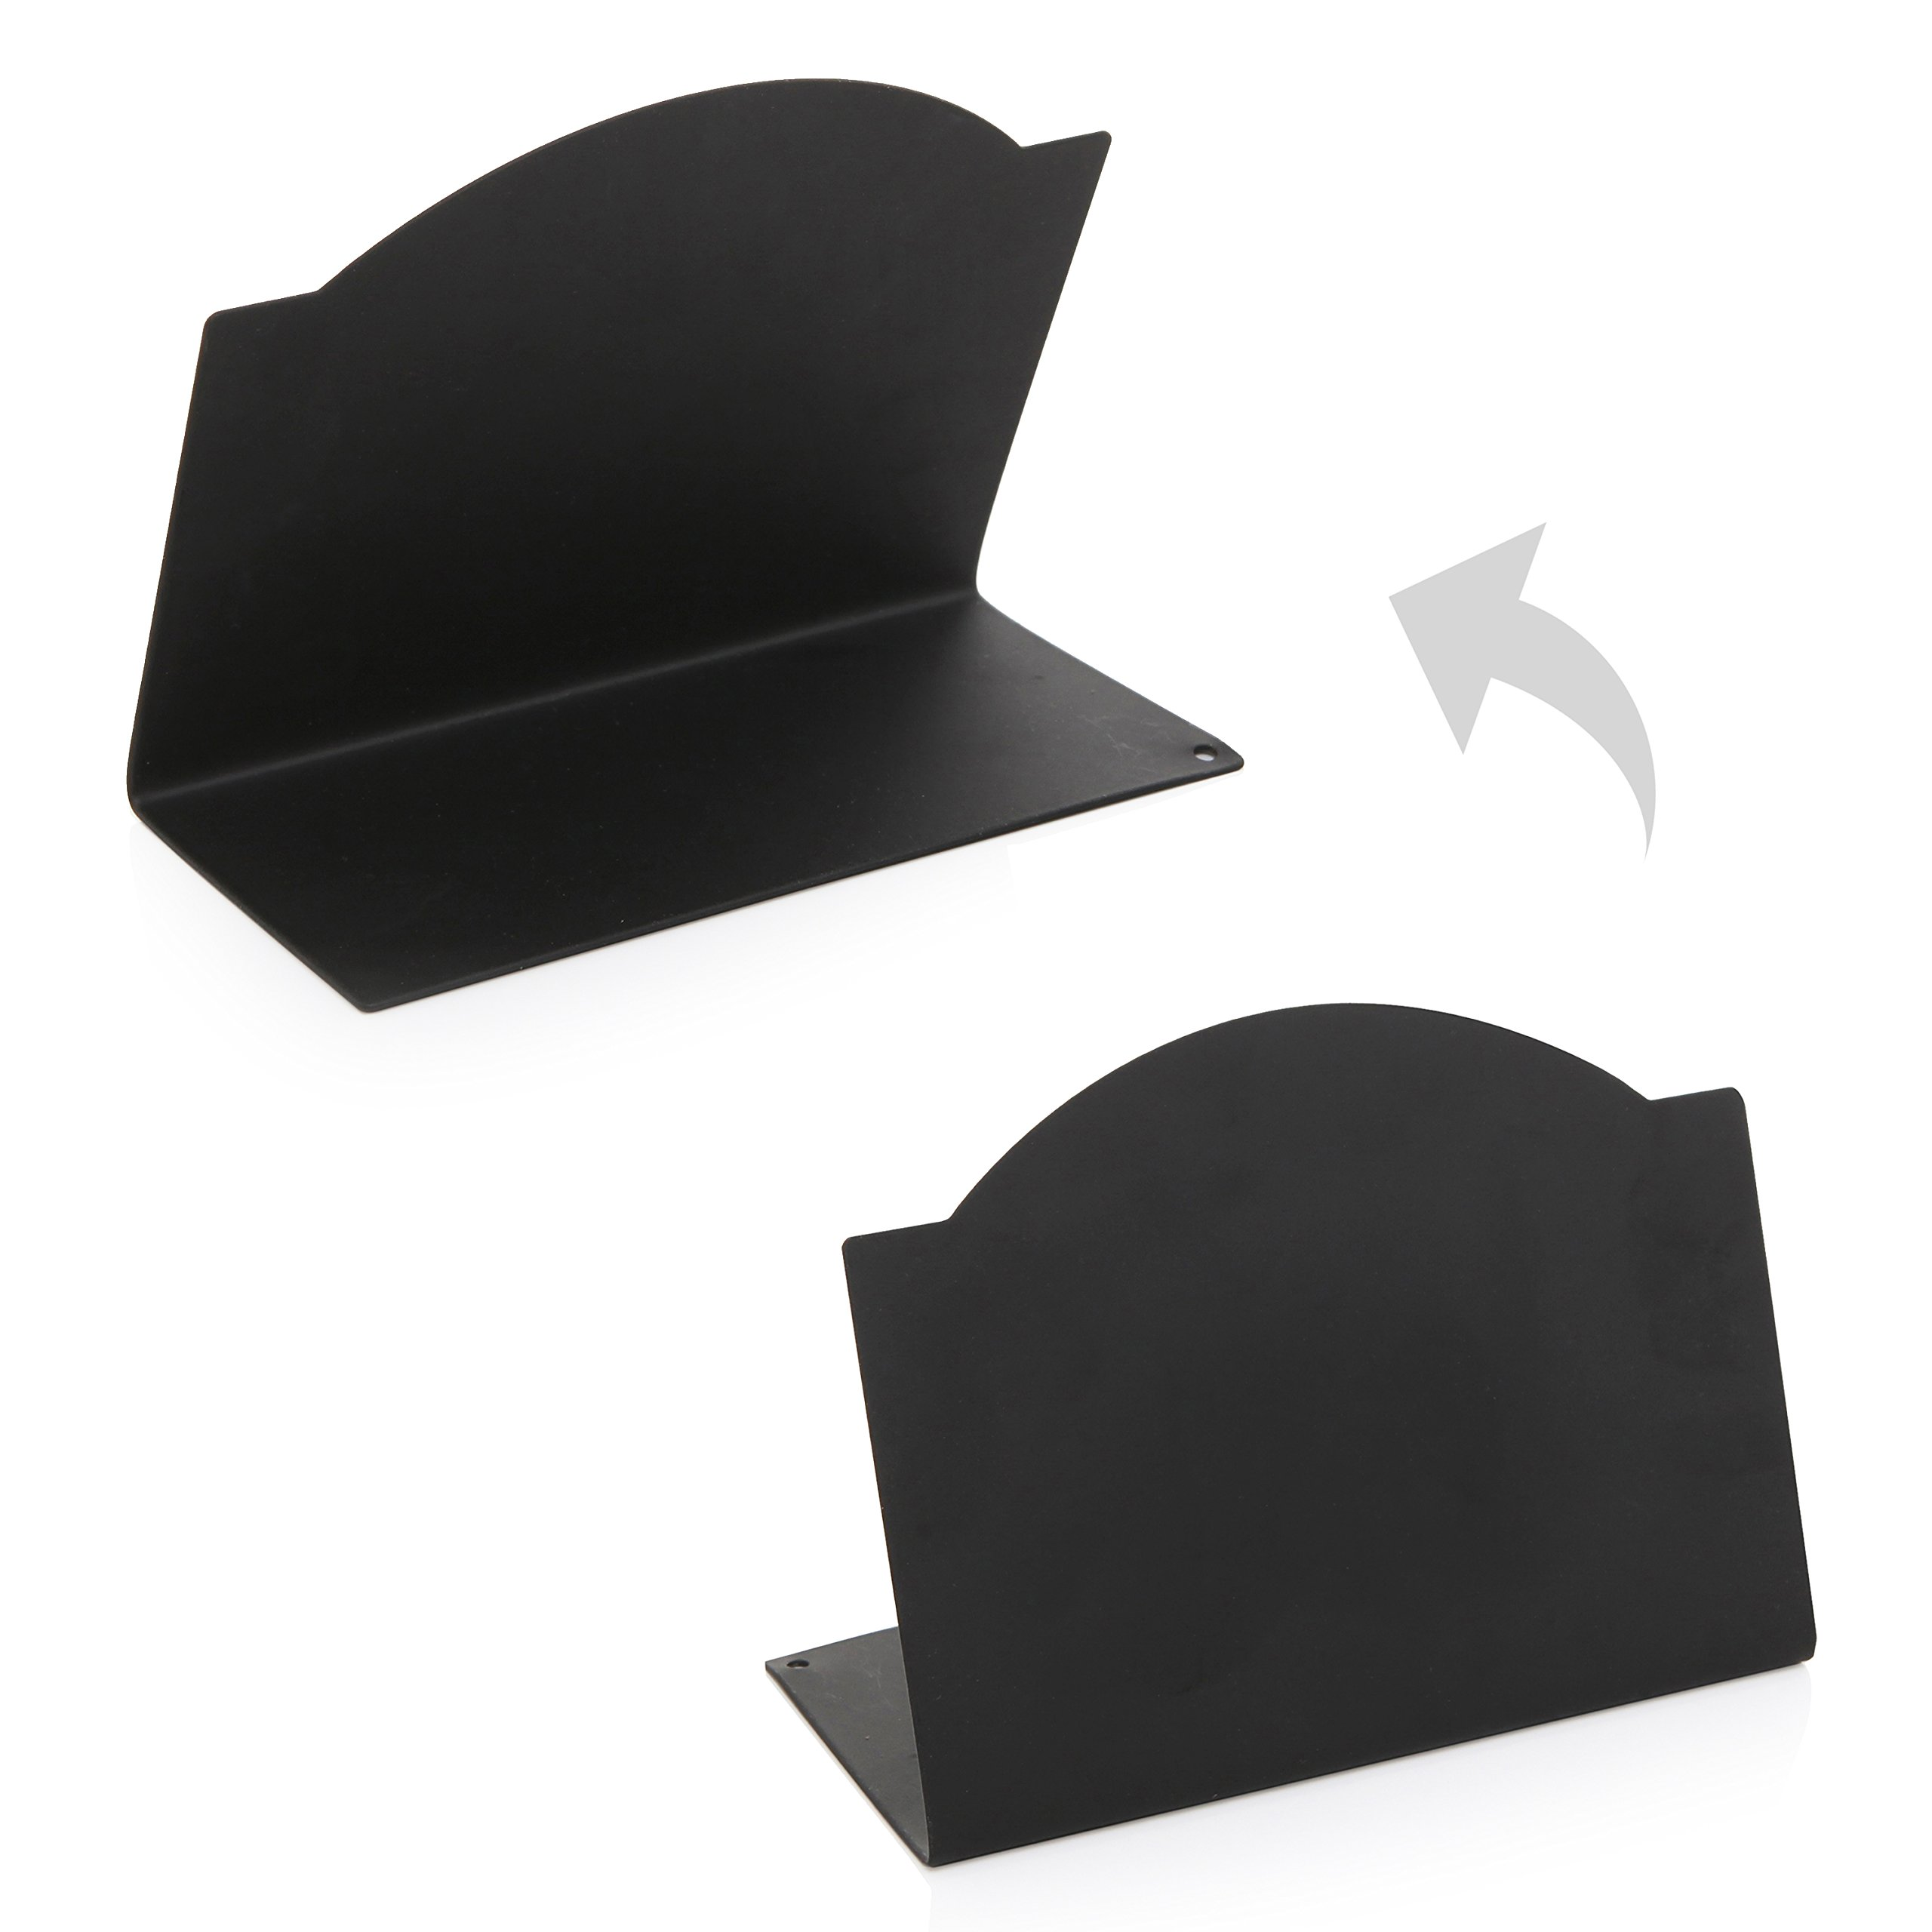 Freestanding Black Metal Erasable Chalkboard Place Card Signs, Small Memo Boards, (Set of 4) by MyGift (Image #3)